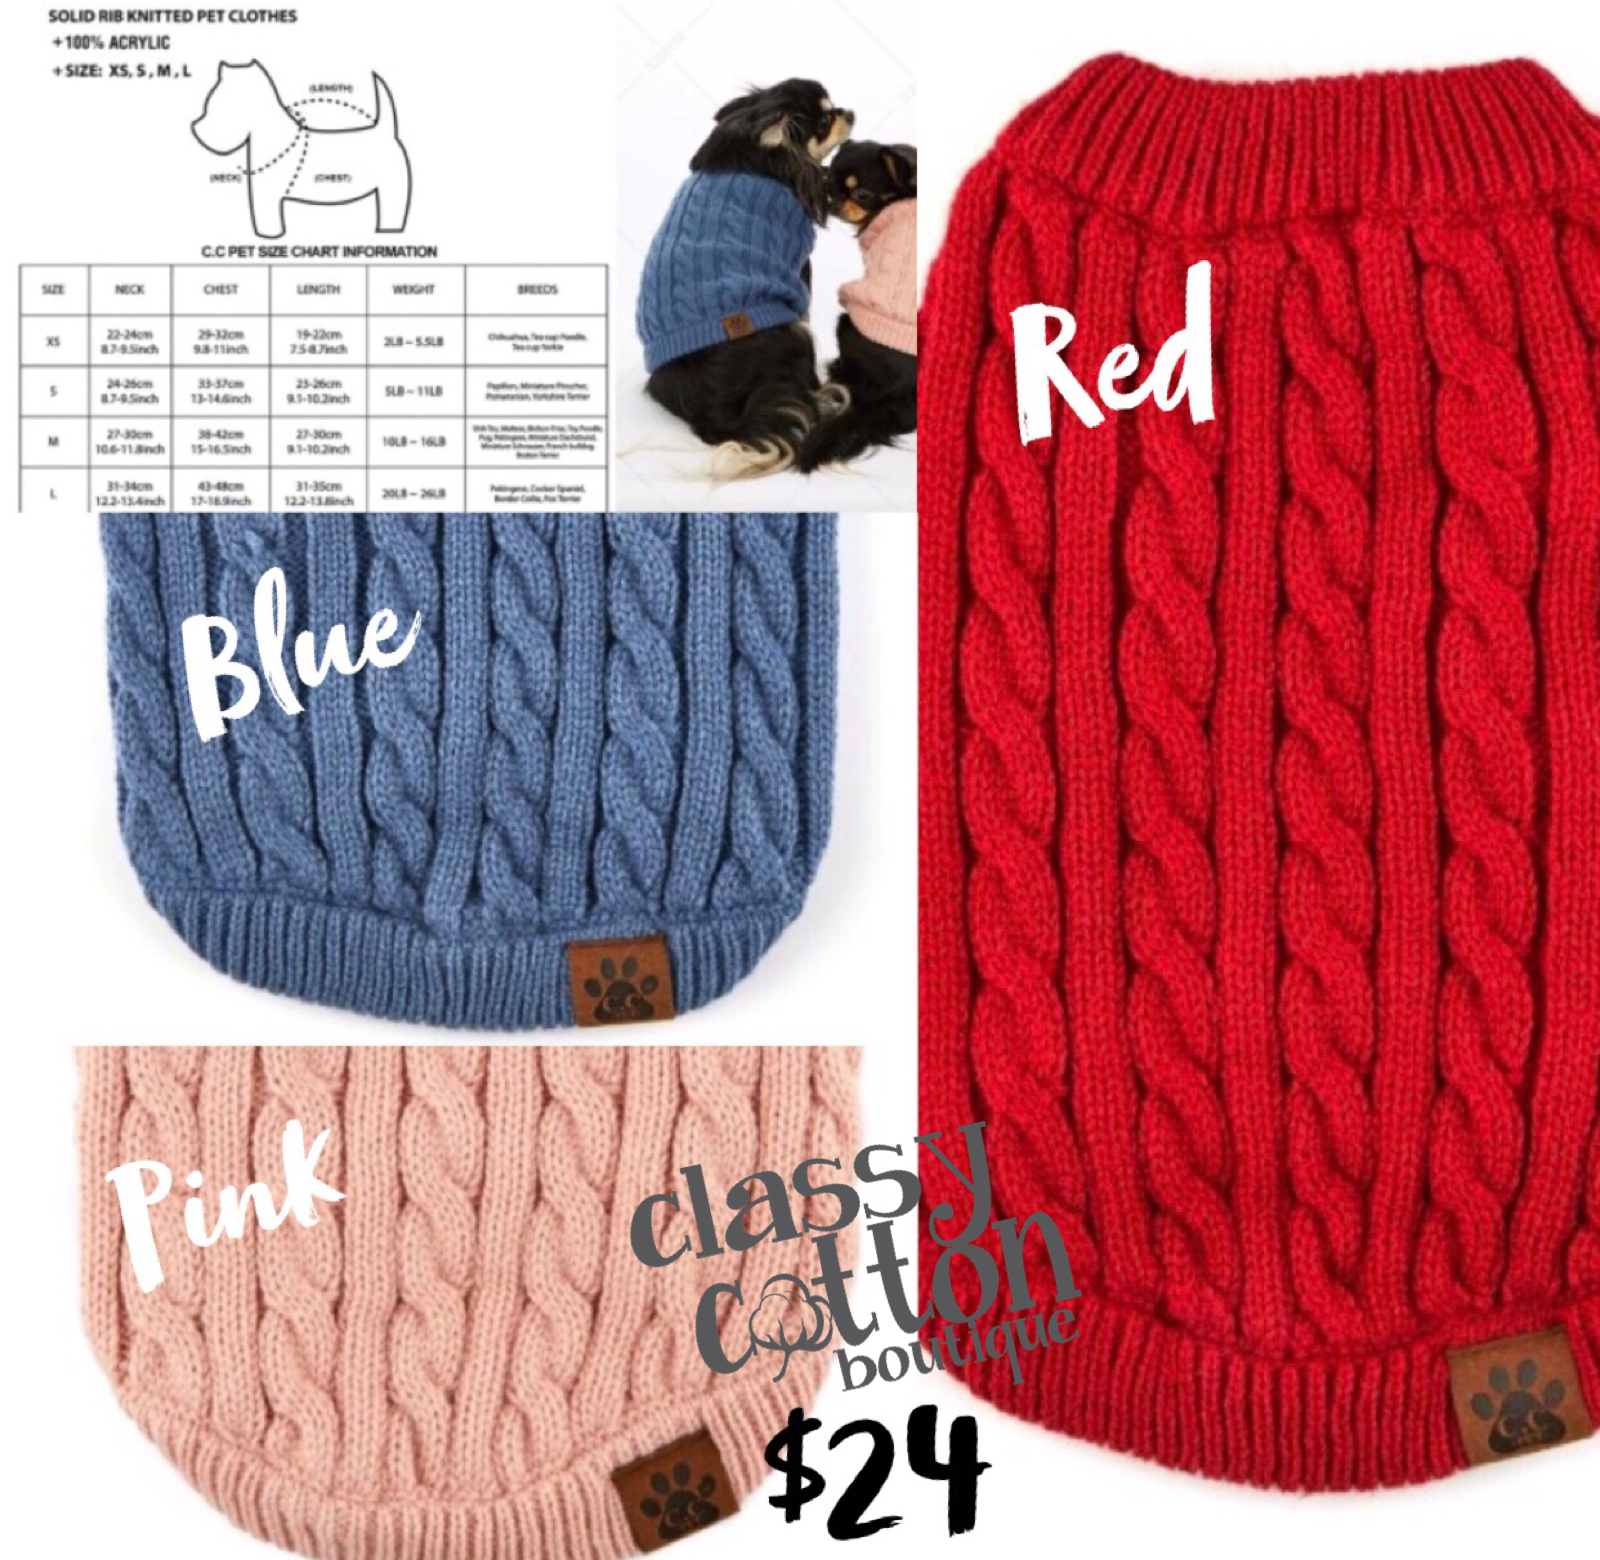 3414-C.C knitted Pet Sweater *Final Sale*